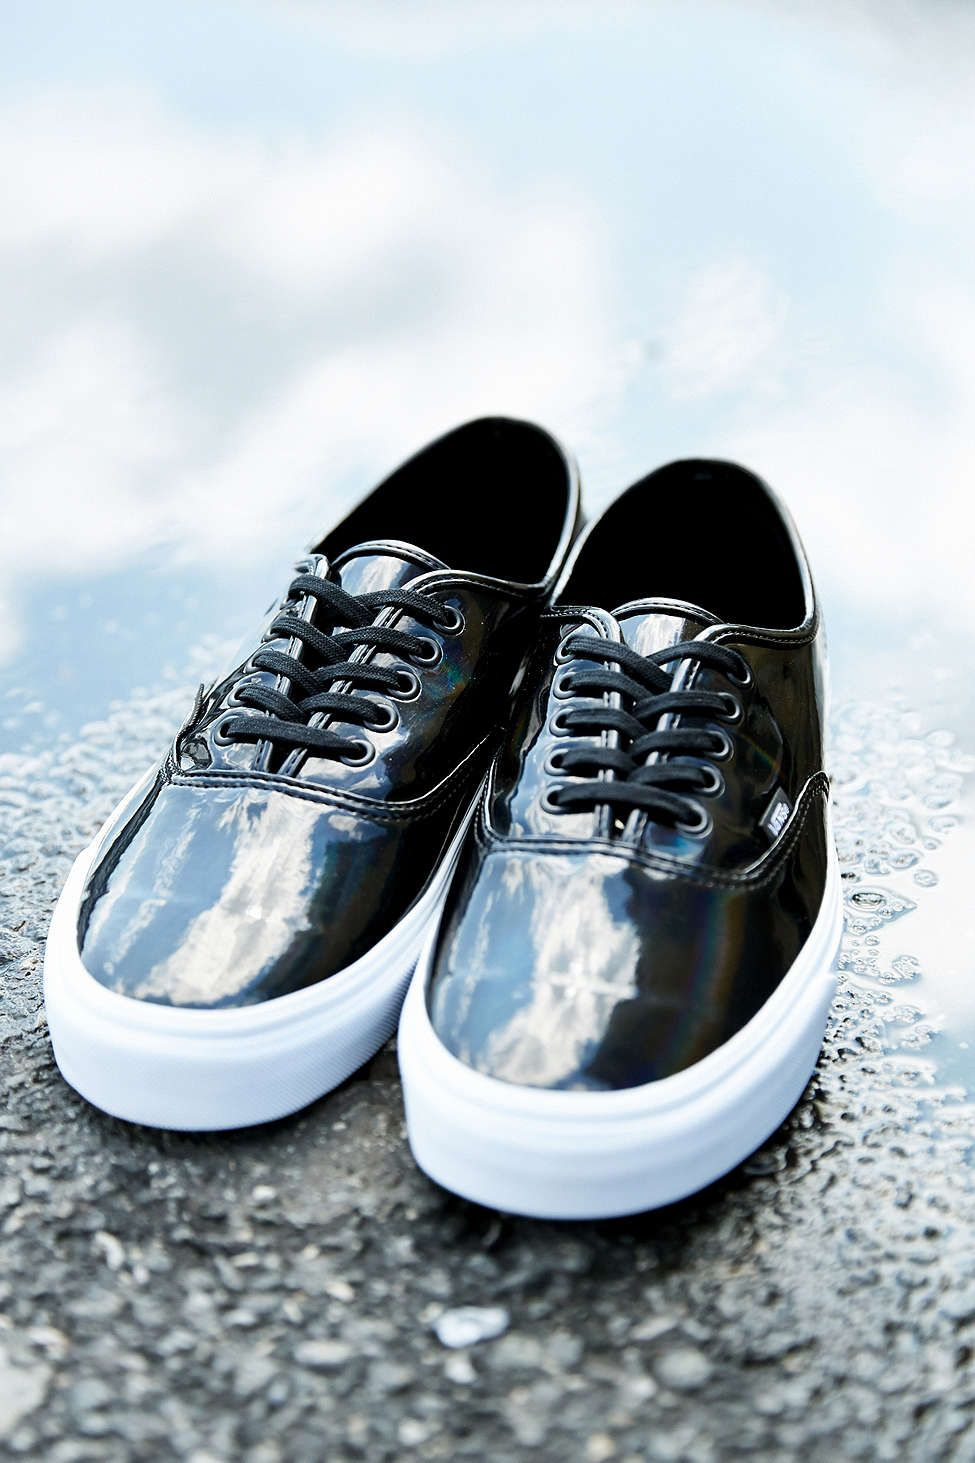 216a40e8c88f5c Vans Patent Leather Classic Authentic Mens Sneaker - Urban Outfitters